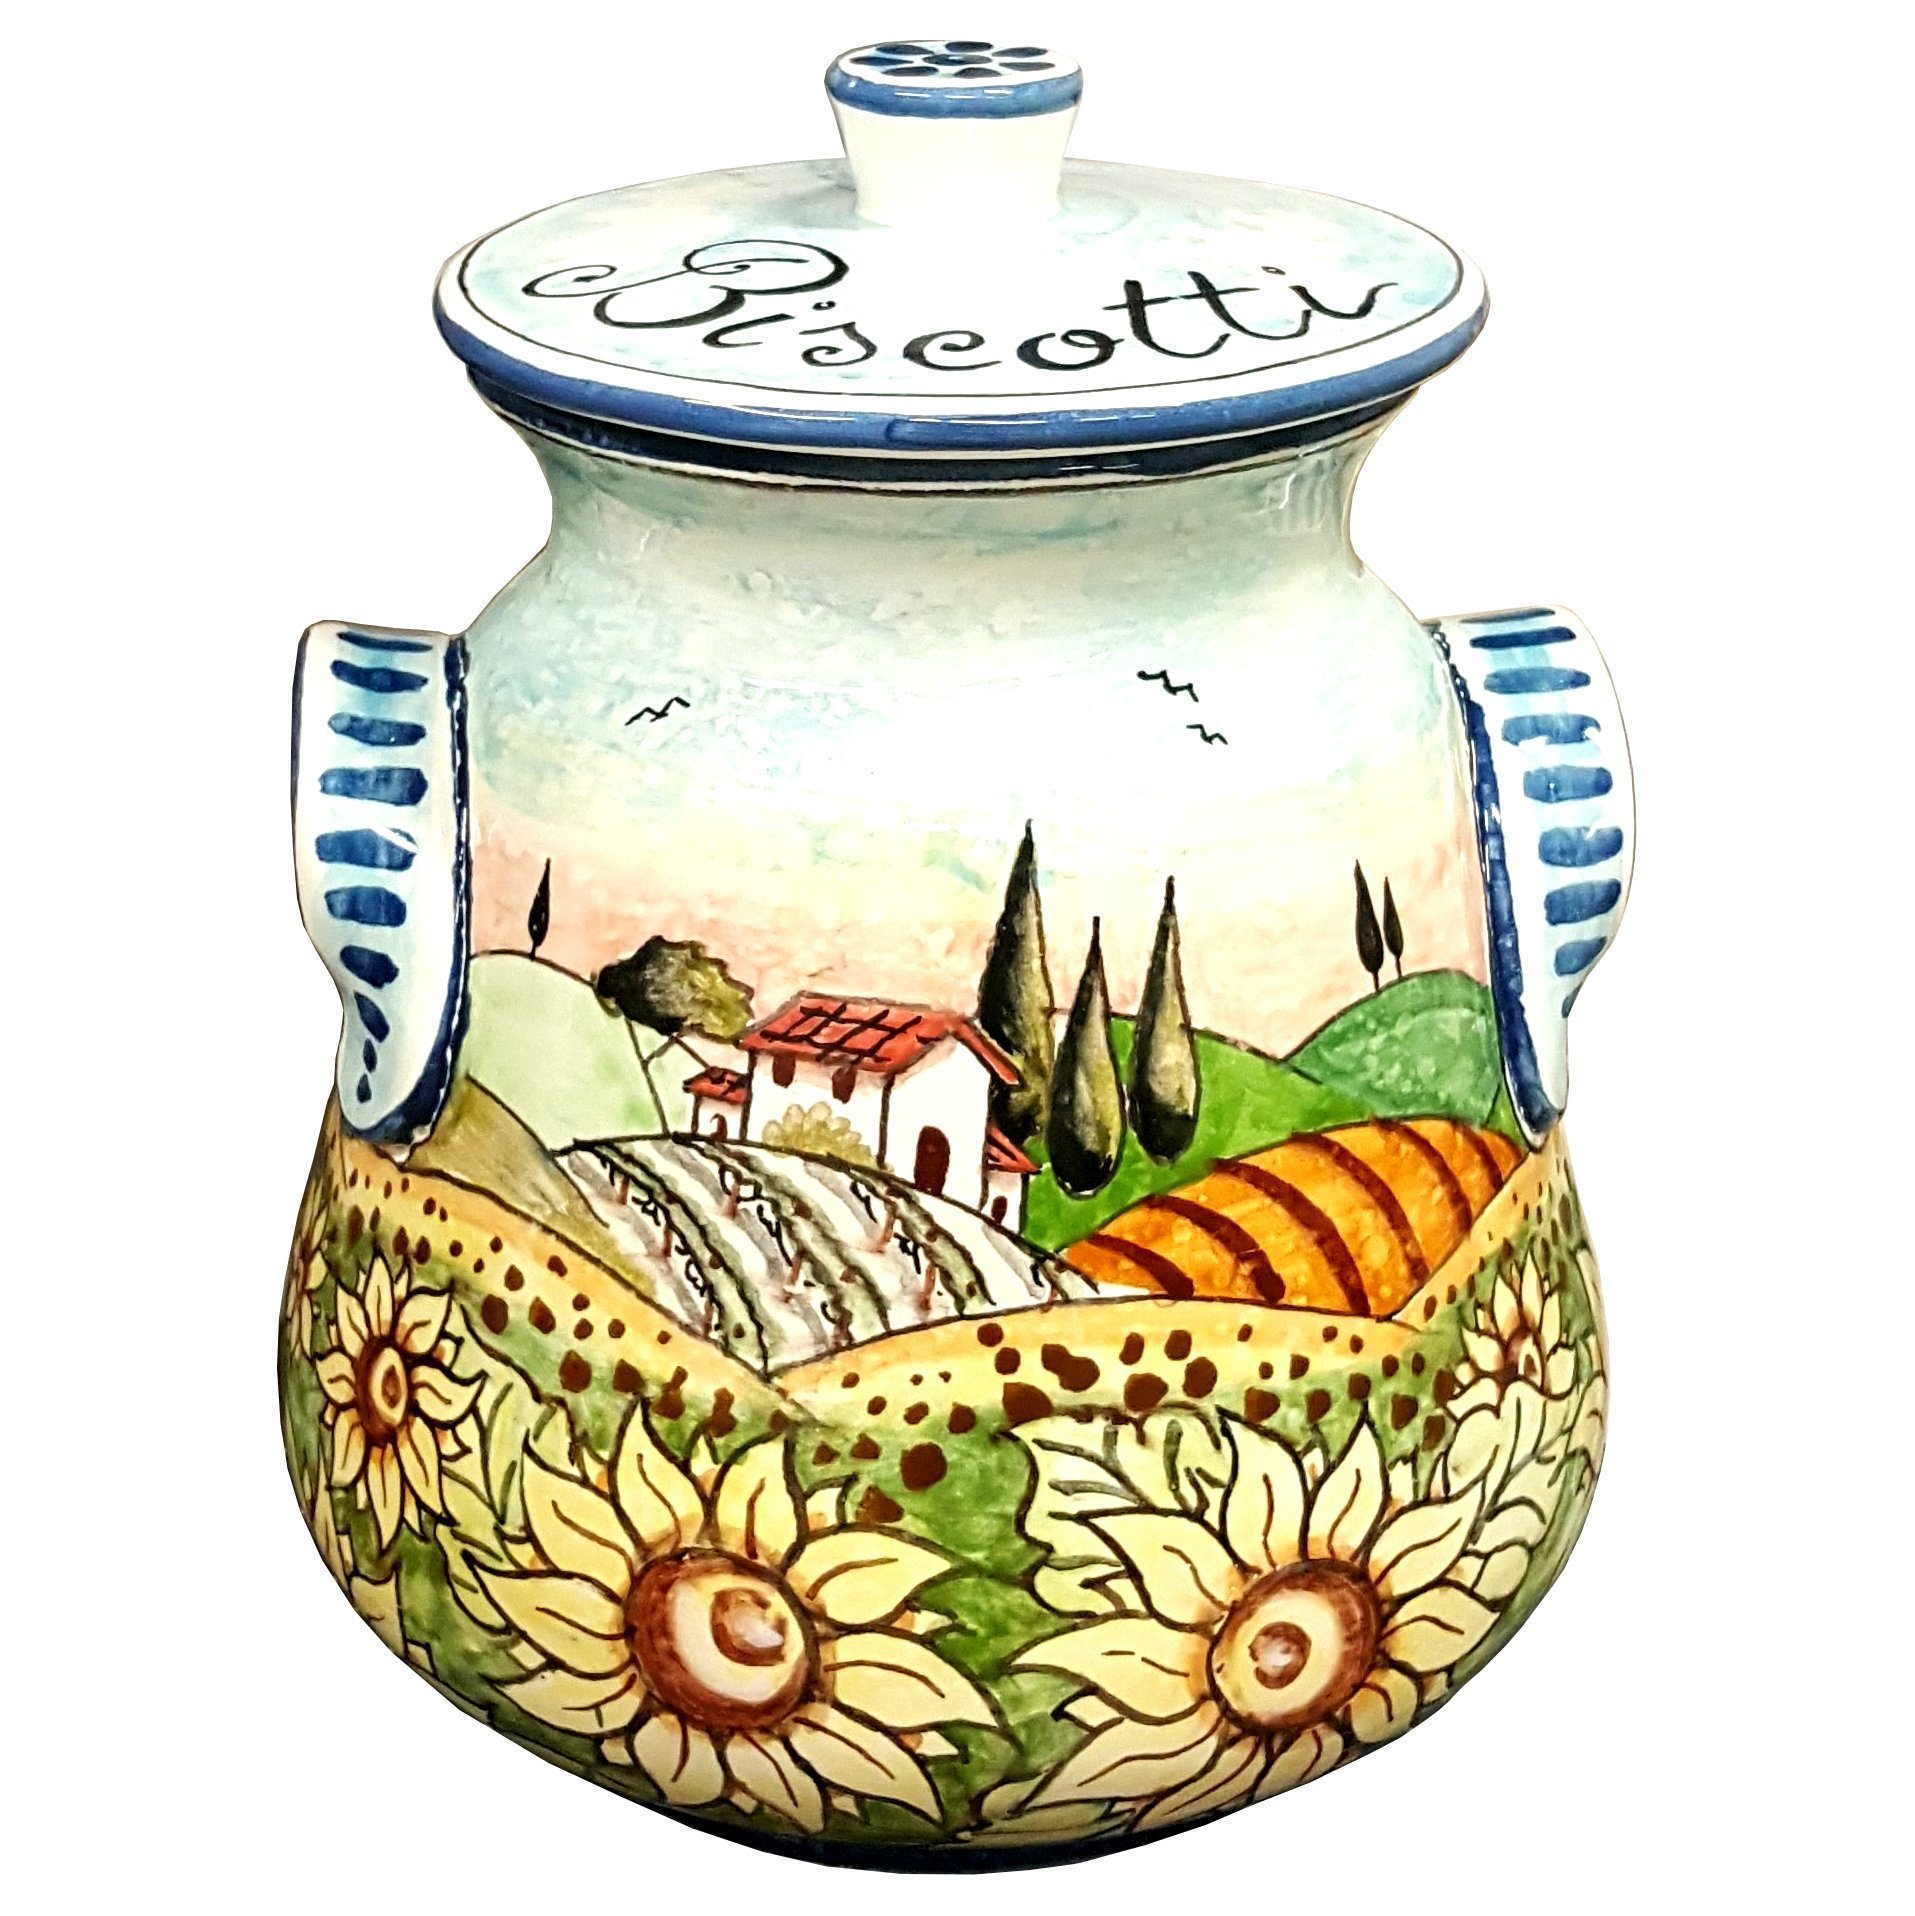 CERAMICHE D'ARTE PARRINI- Italian Ceramic Biscuit Cookies Jar Hand Painted Decorated Sunflowers Landscape Made in ITALY Tuscan Art Pottery by CERAMICHE D'ARTE PARRINI since 1979